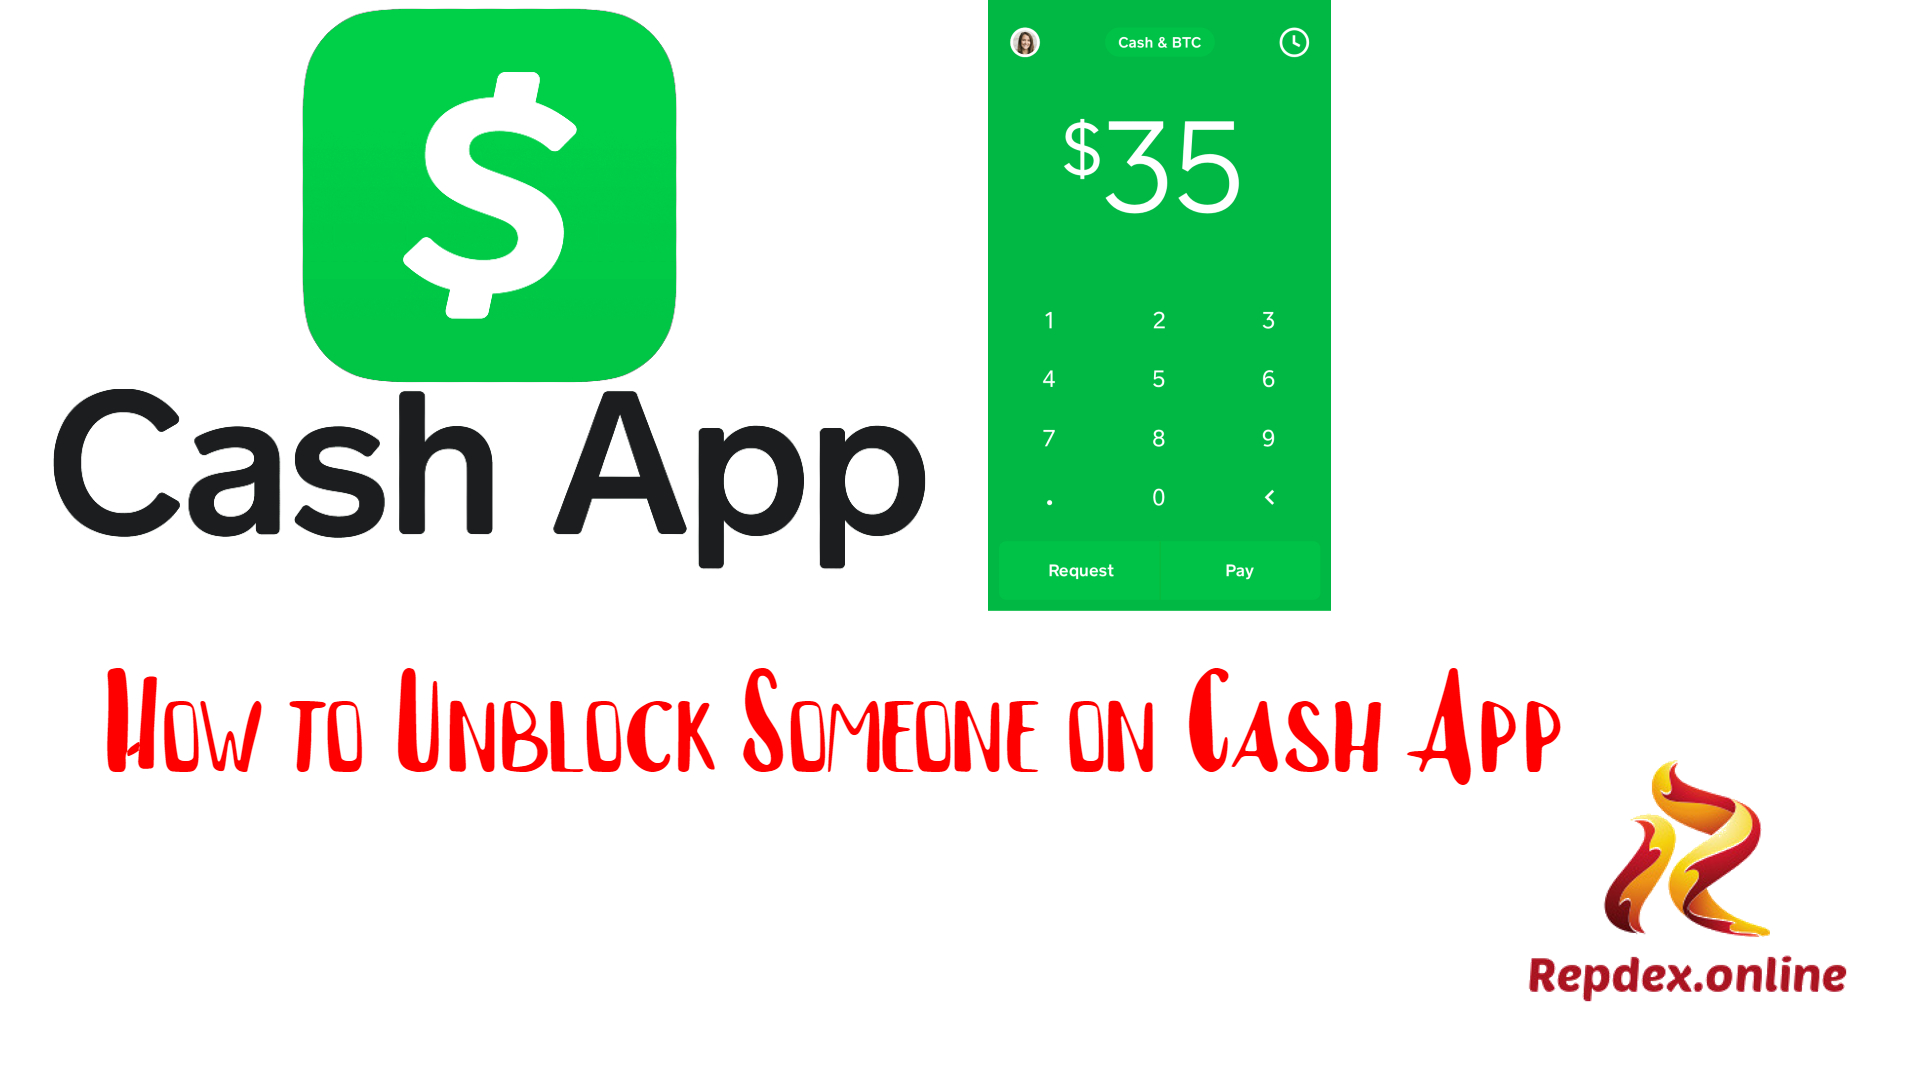 How to Unblock Someone on Cash App